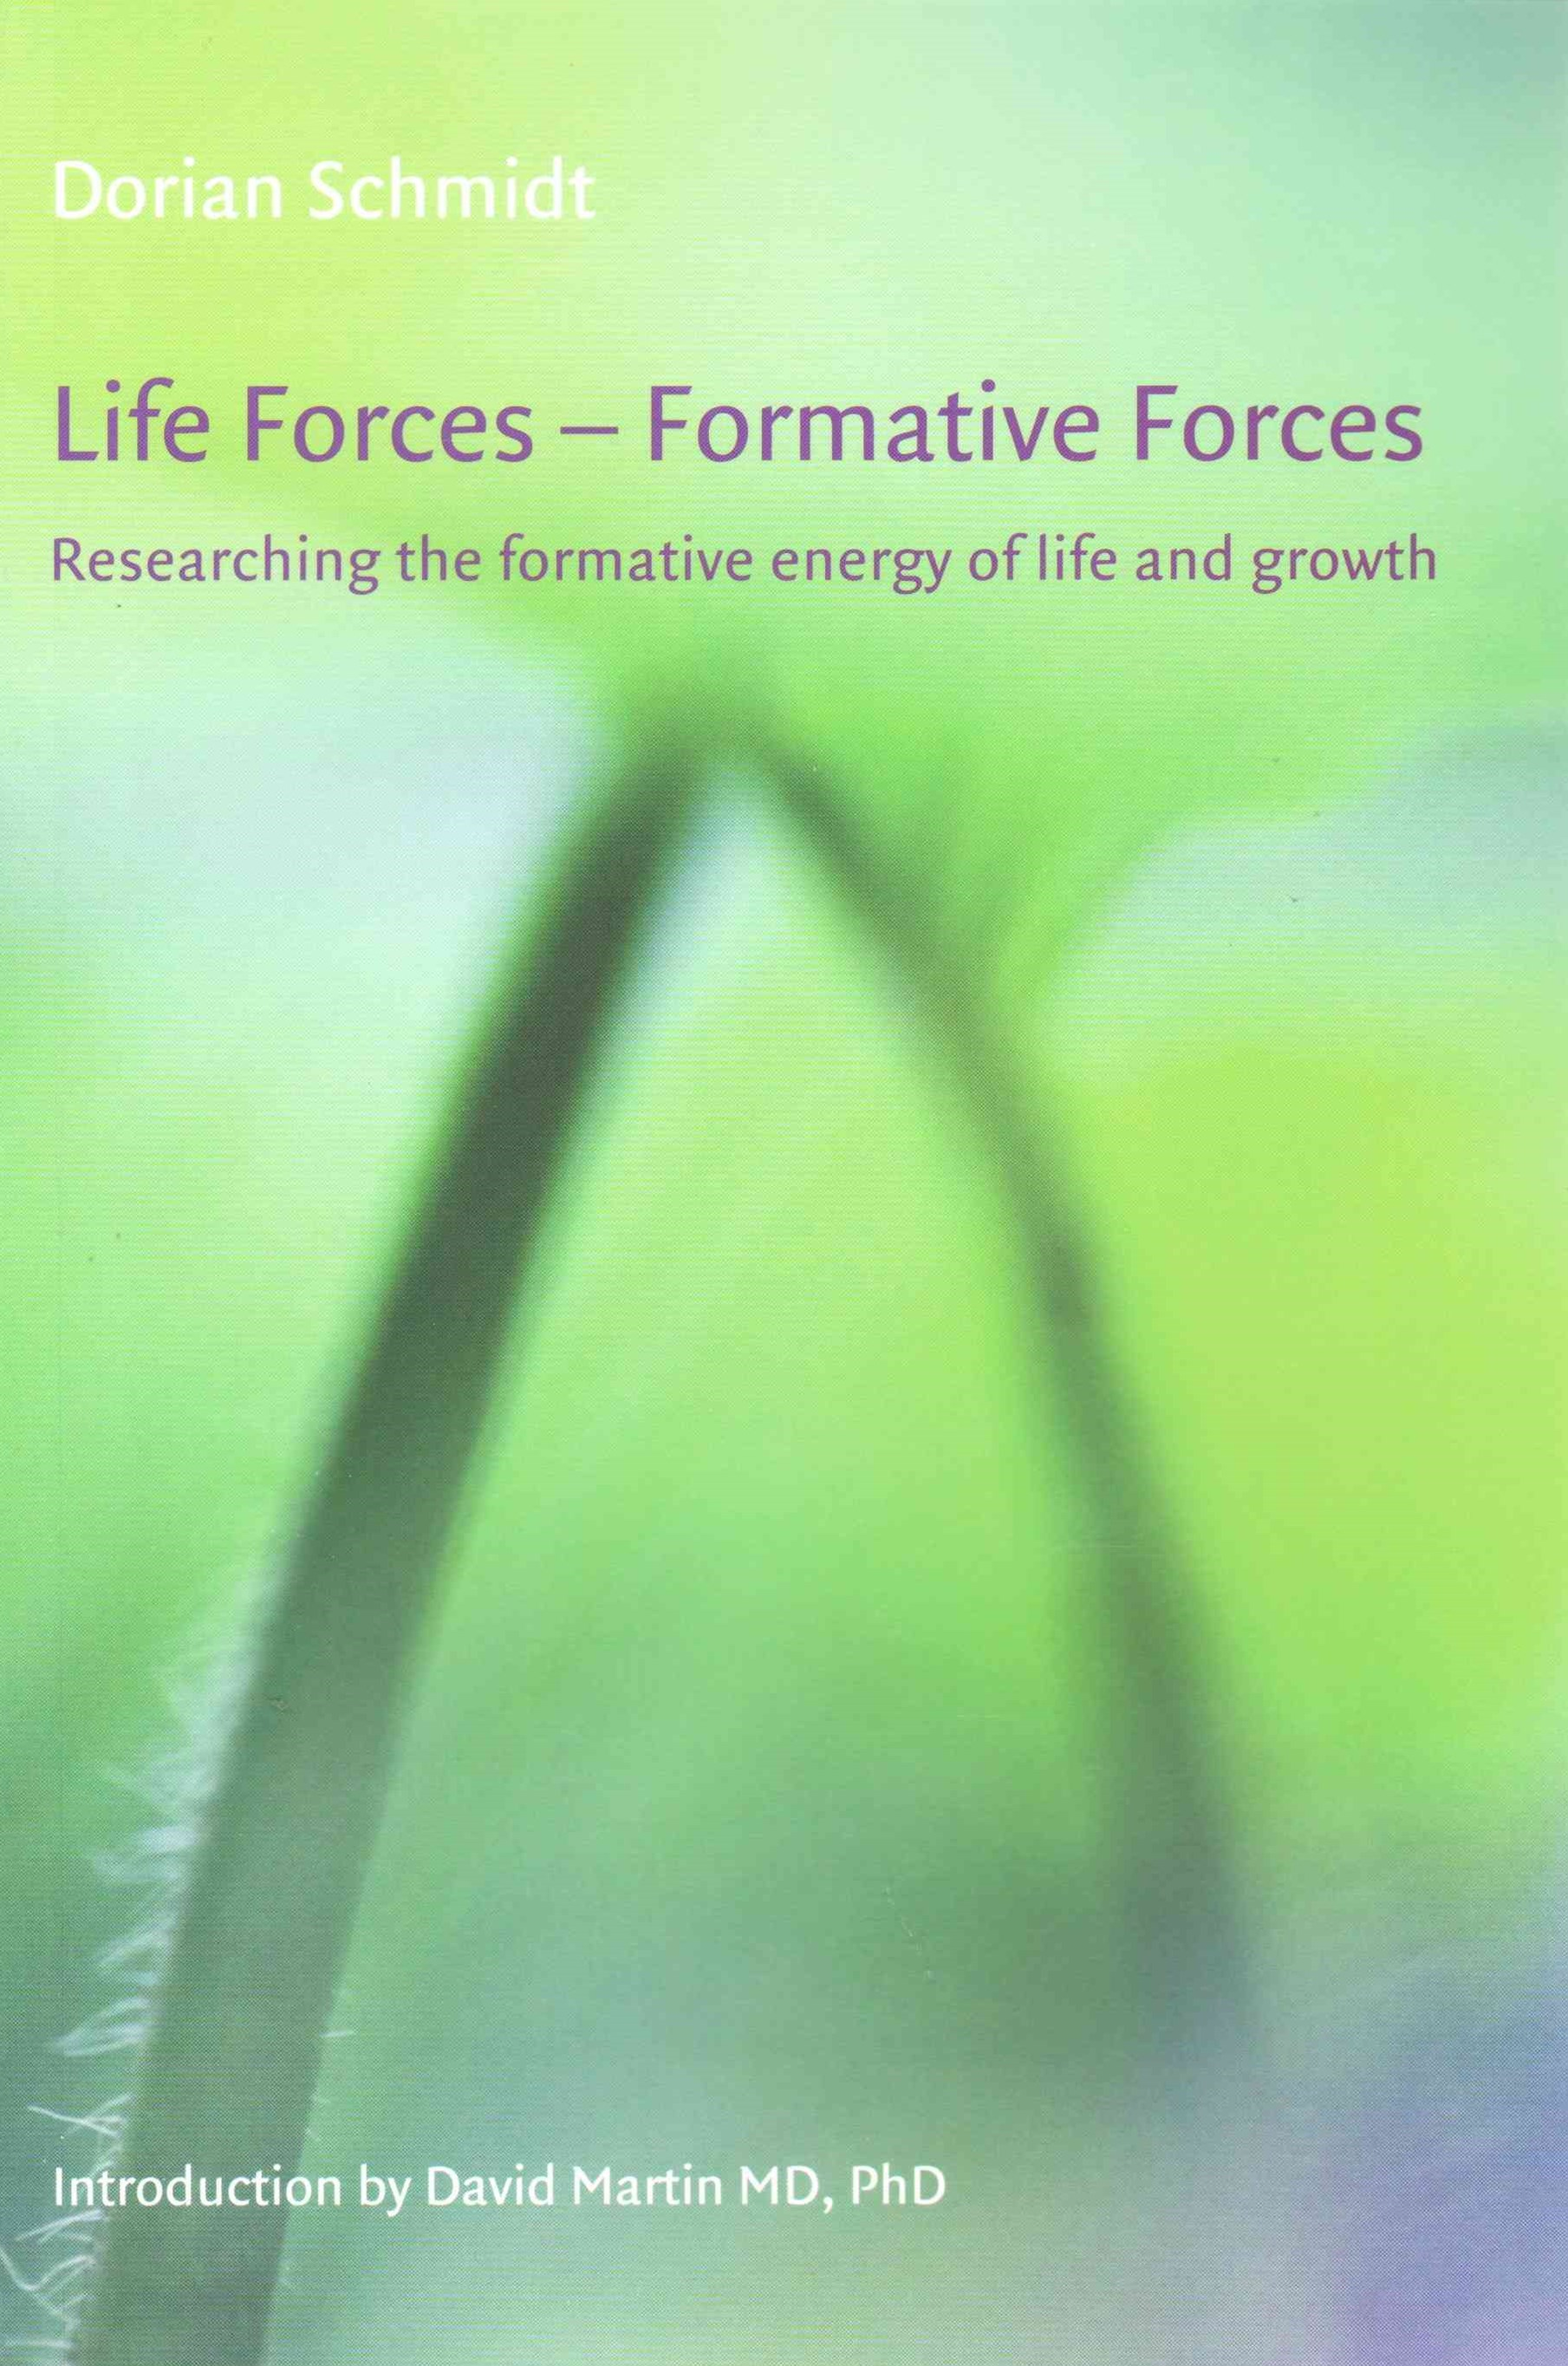 Life Forces - Formative Forces